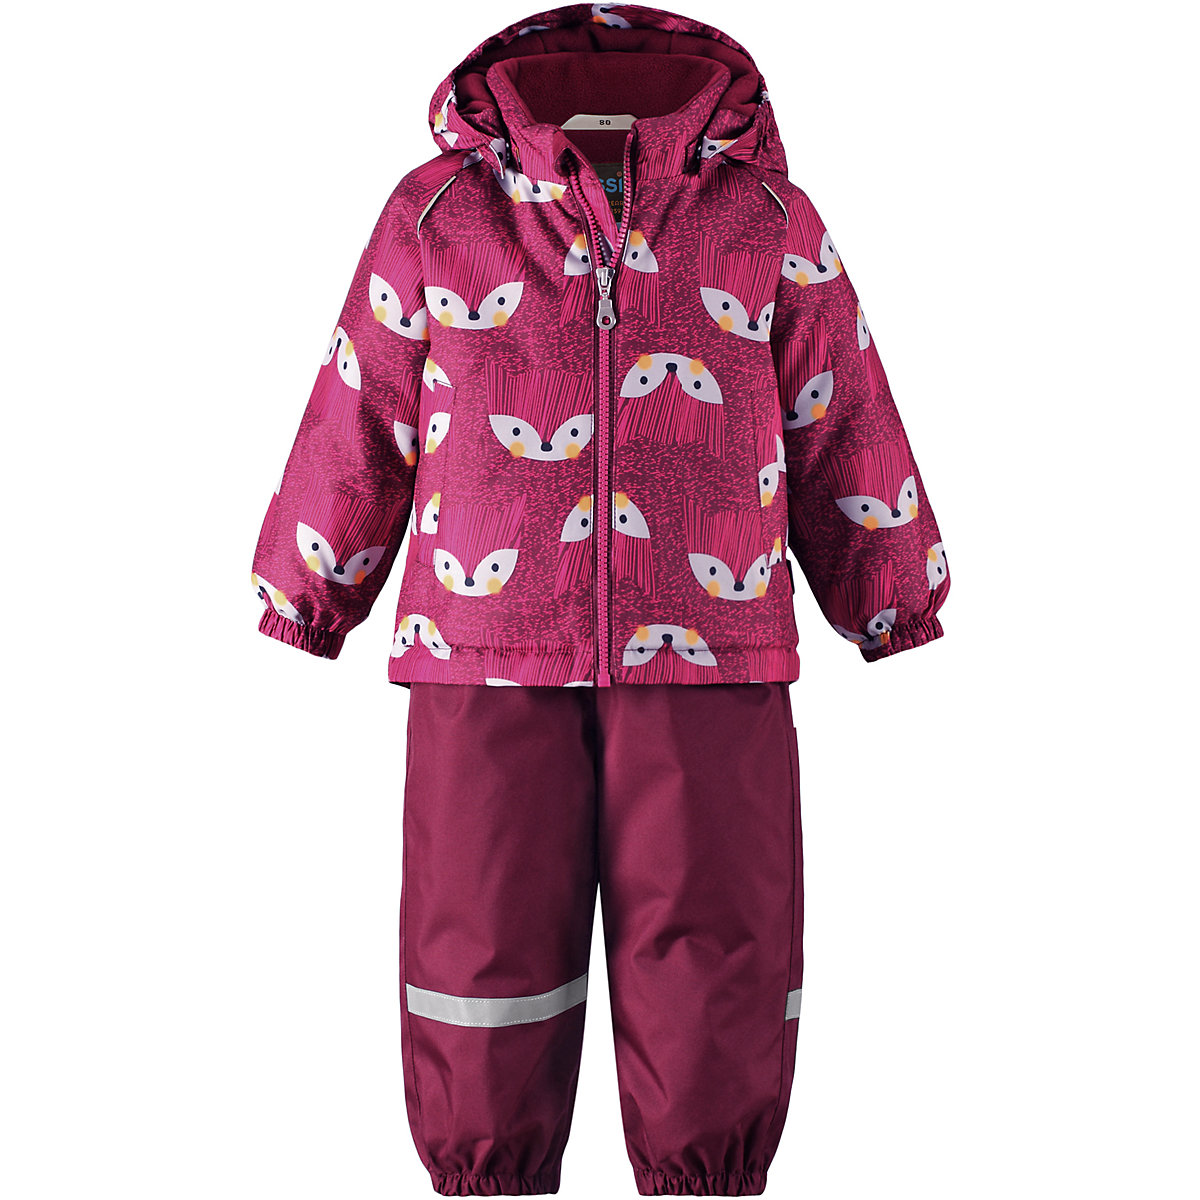 Children's Sets LASSIE for girls 8631960 Winter Track Suit Kids Children clothes Warm children s sets lassie for girls 8631960 winter track suit kids children clothes warm